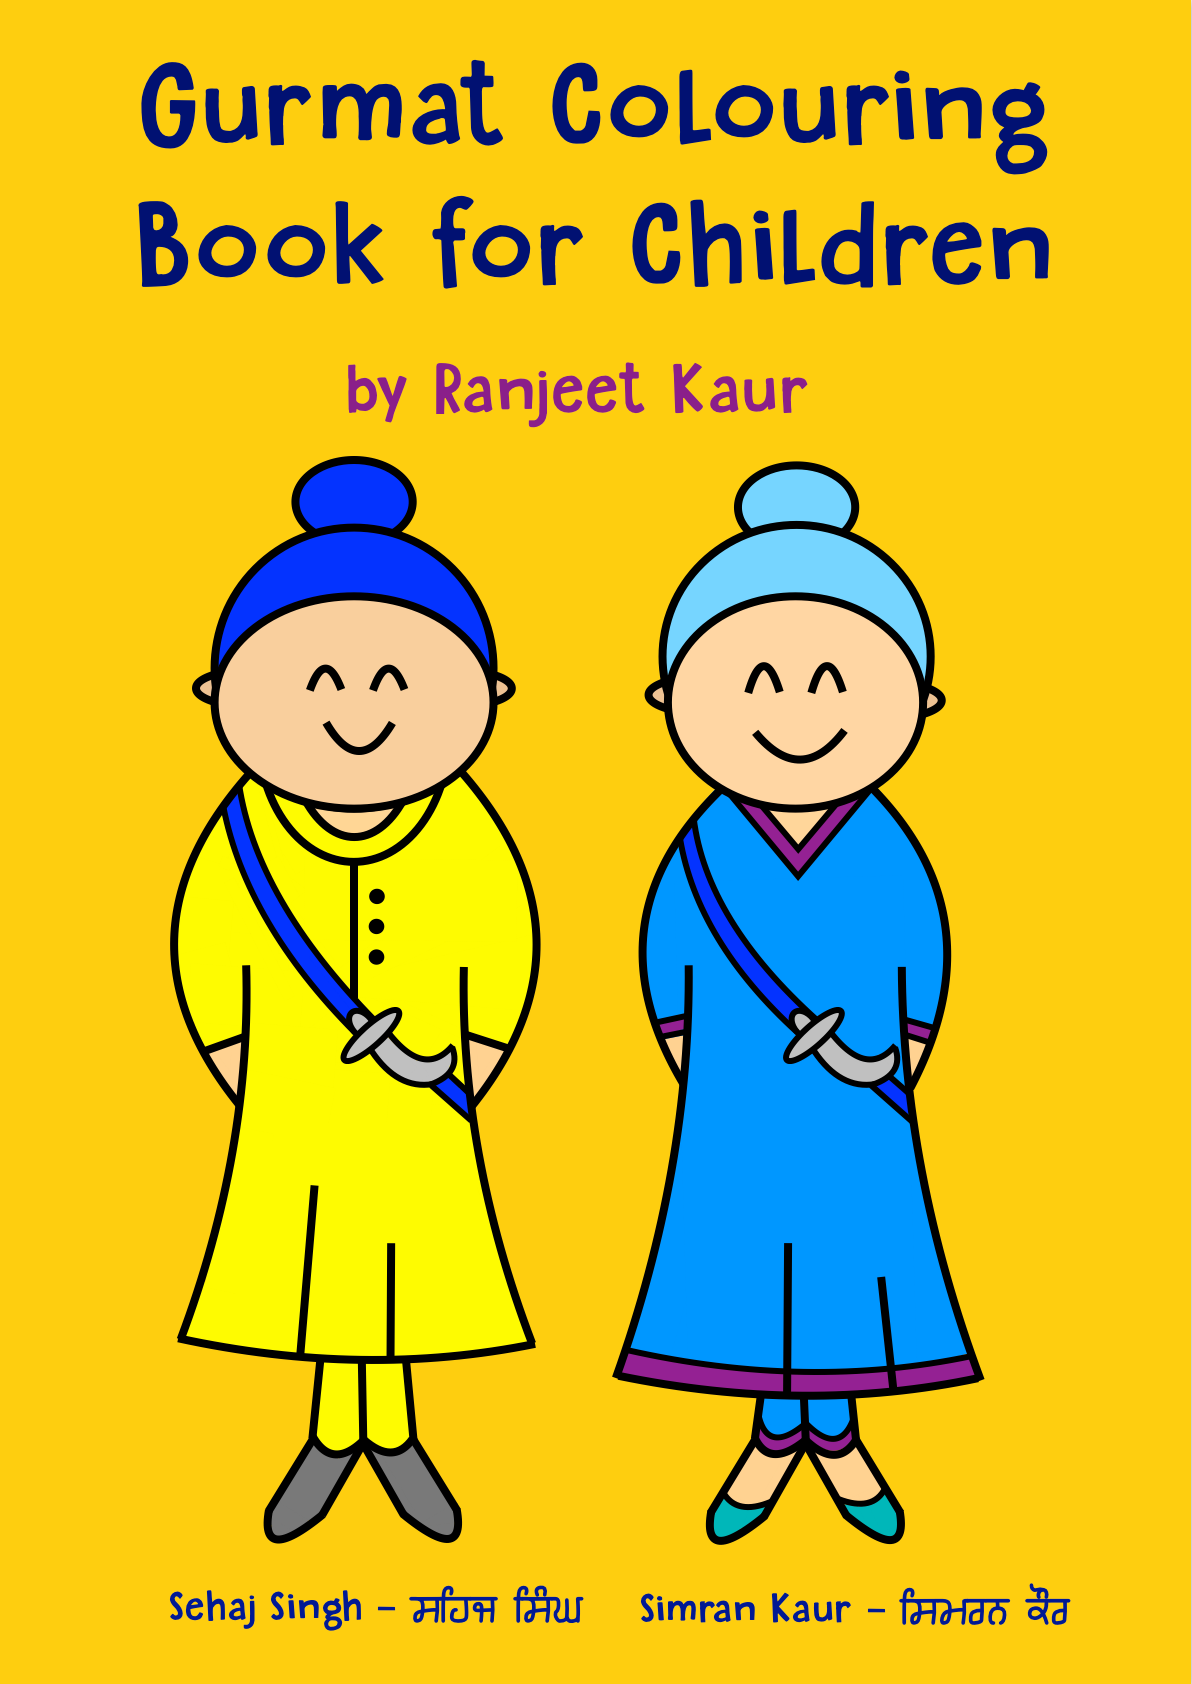 gurmat colouring book for children sikhexpo - Colouring Books For Children